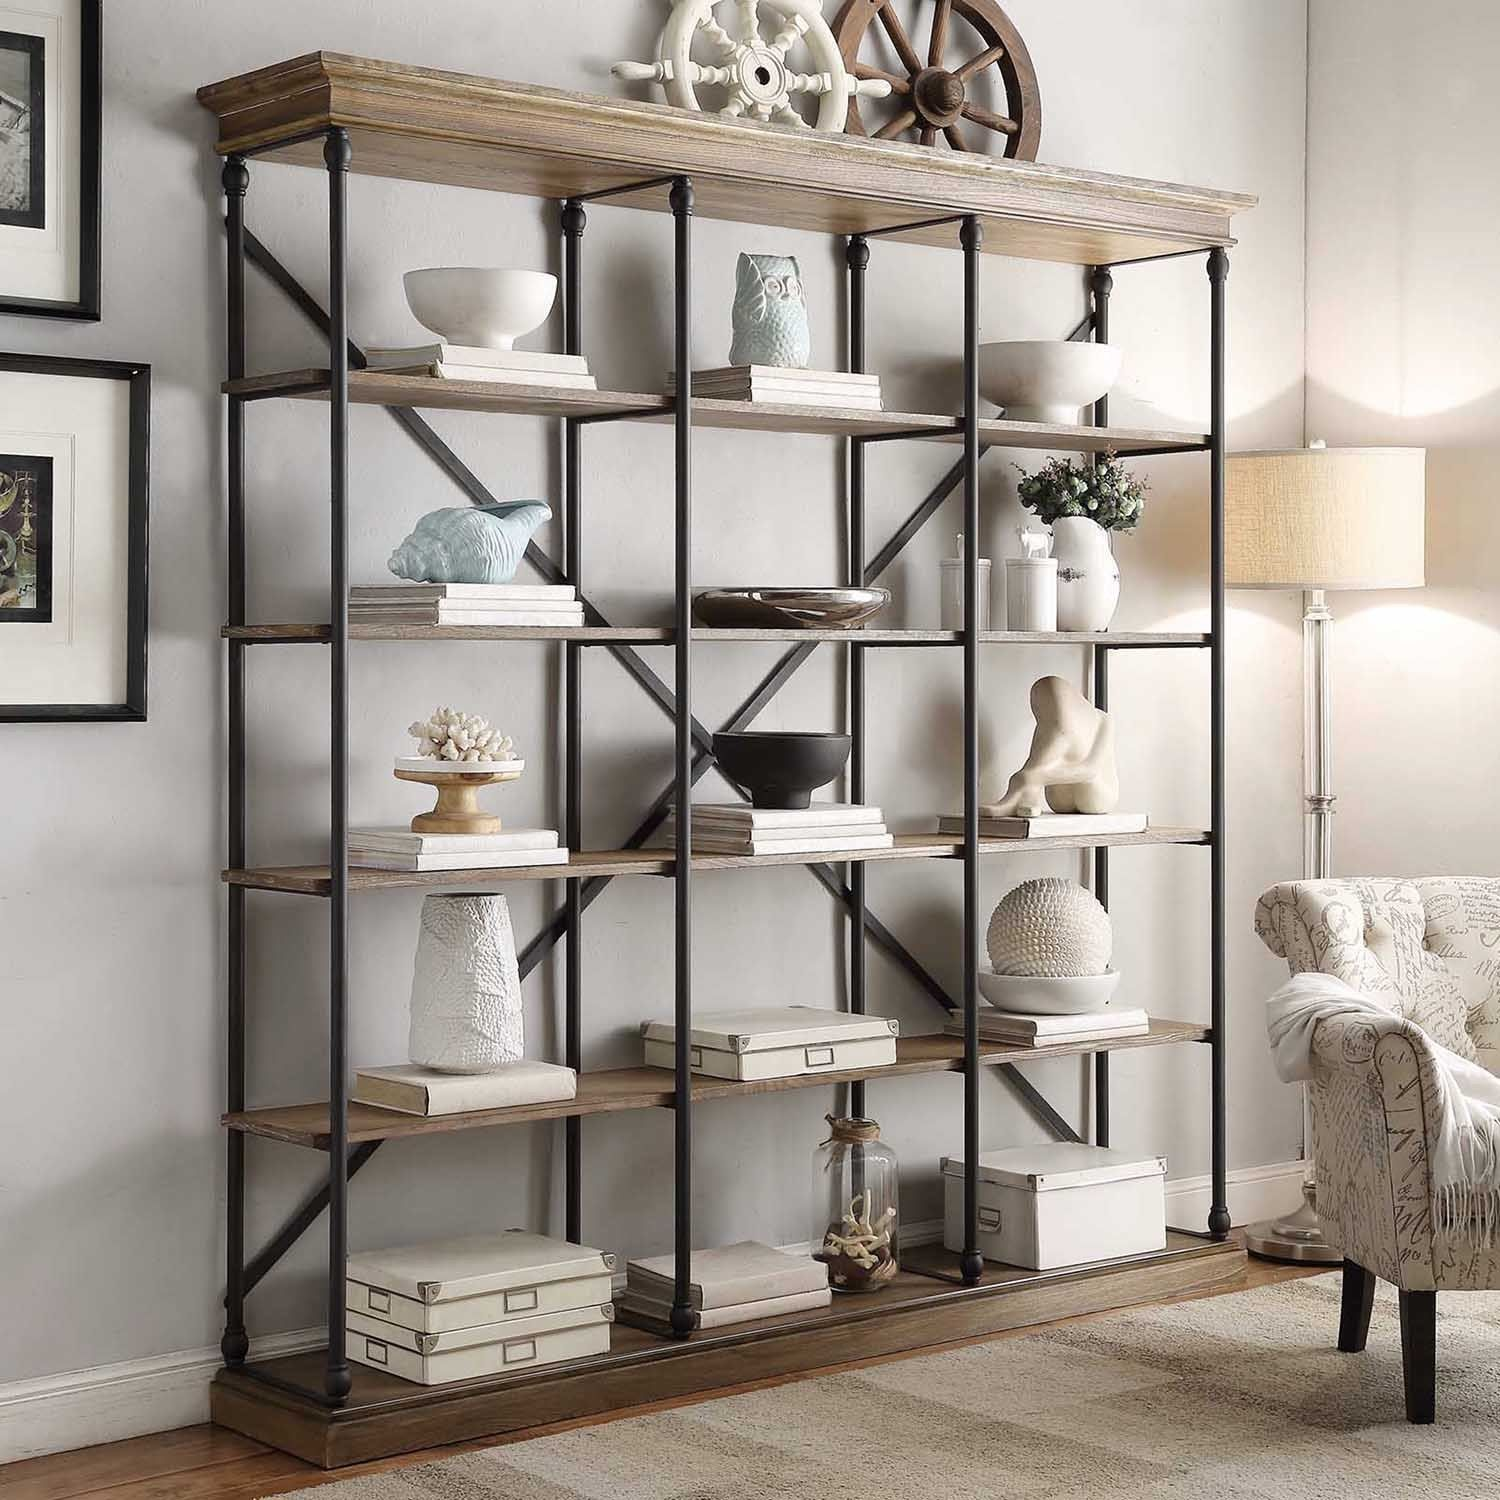 Trending now at TrendBrew : INSPIRE Q Barnstone Cornice Brown Oak Driftwood  Triple Shelving Bookcase